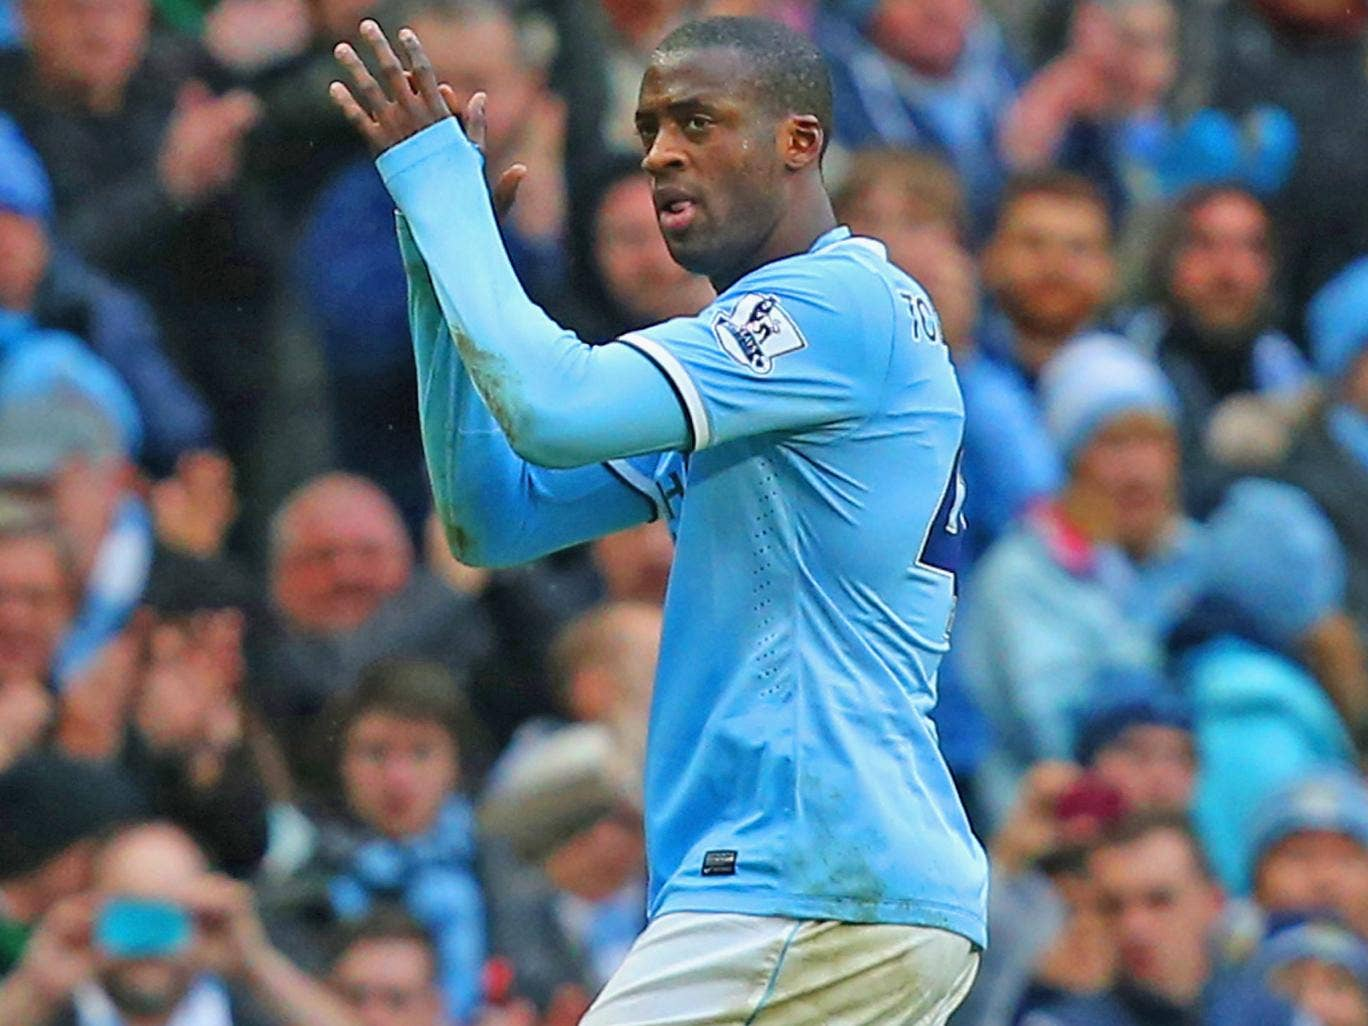 Manchester City claim Yaya Touré received a birthday cake, a Facebook post and had 'Happy Birthday' sung to him